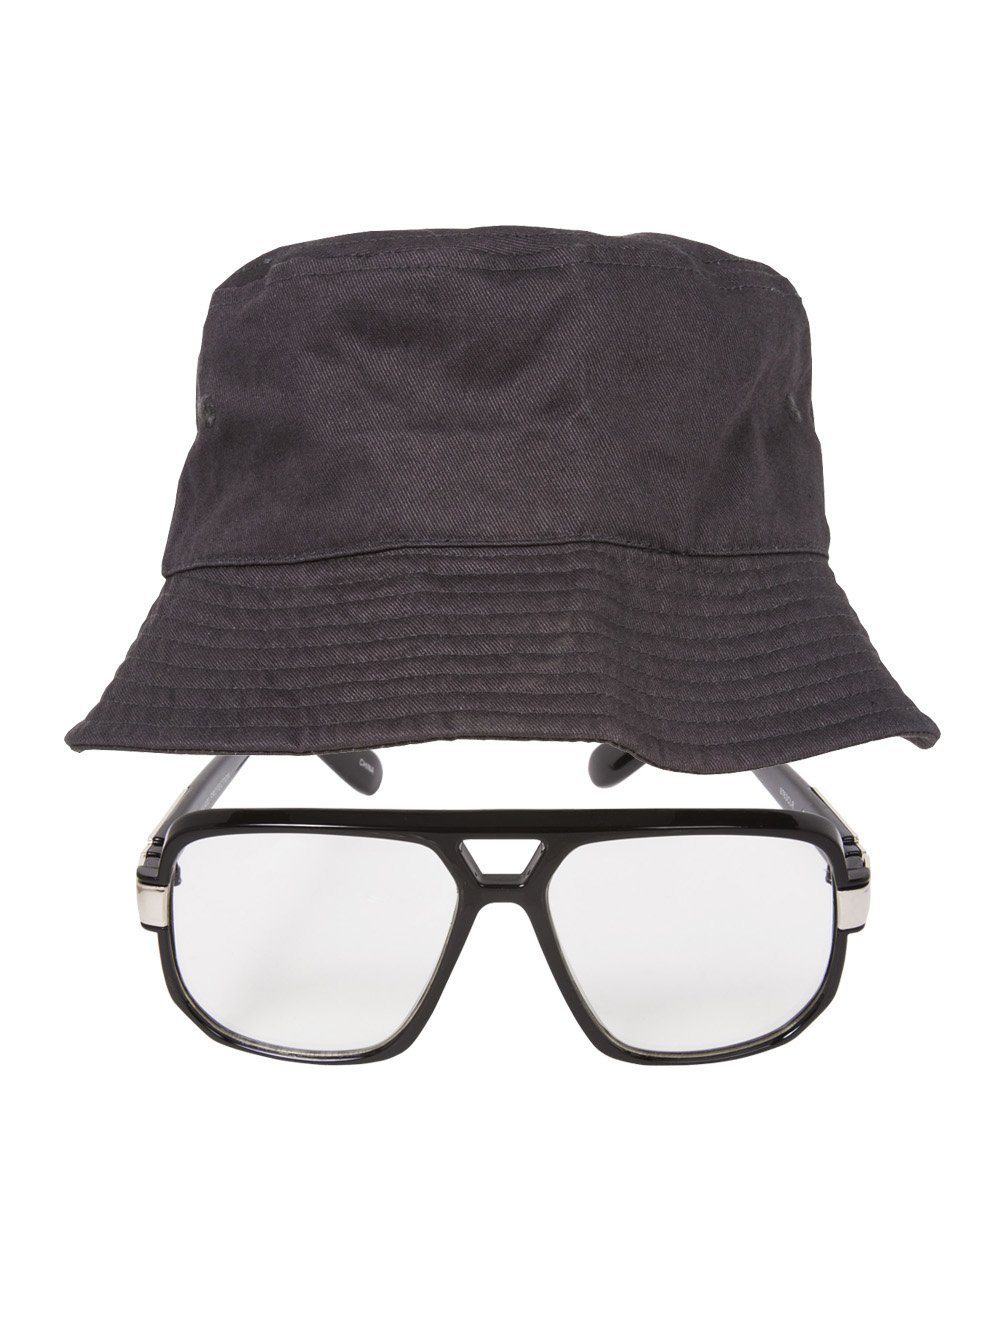 0f3e79d324e5 Get Quotations · Gravity Trading 80s 90s Hip-Hop Costume Kit (Bucket Hat +  Old School